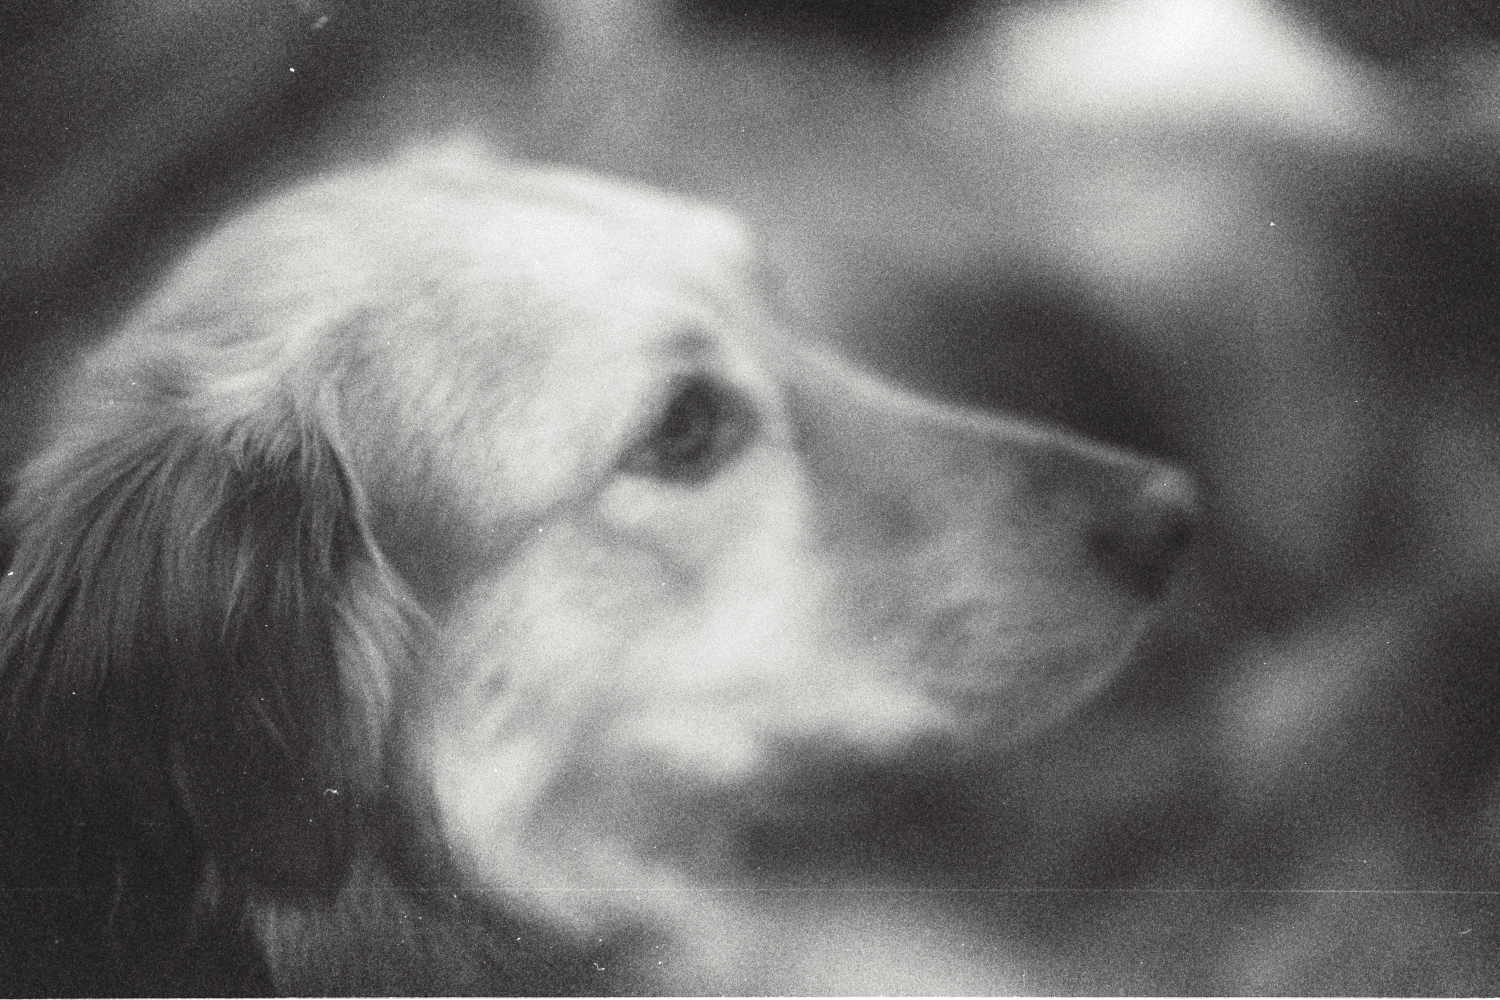 Penny - our old dog